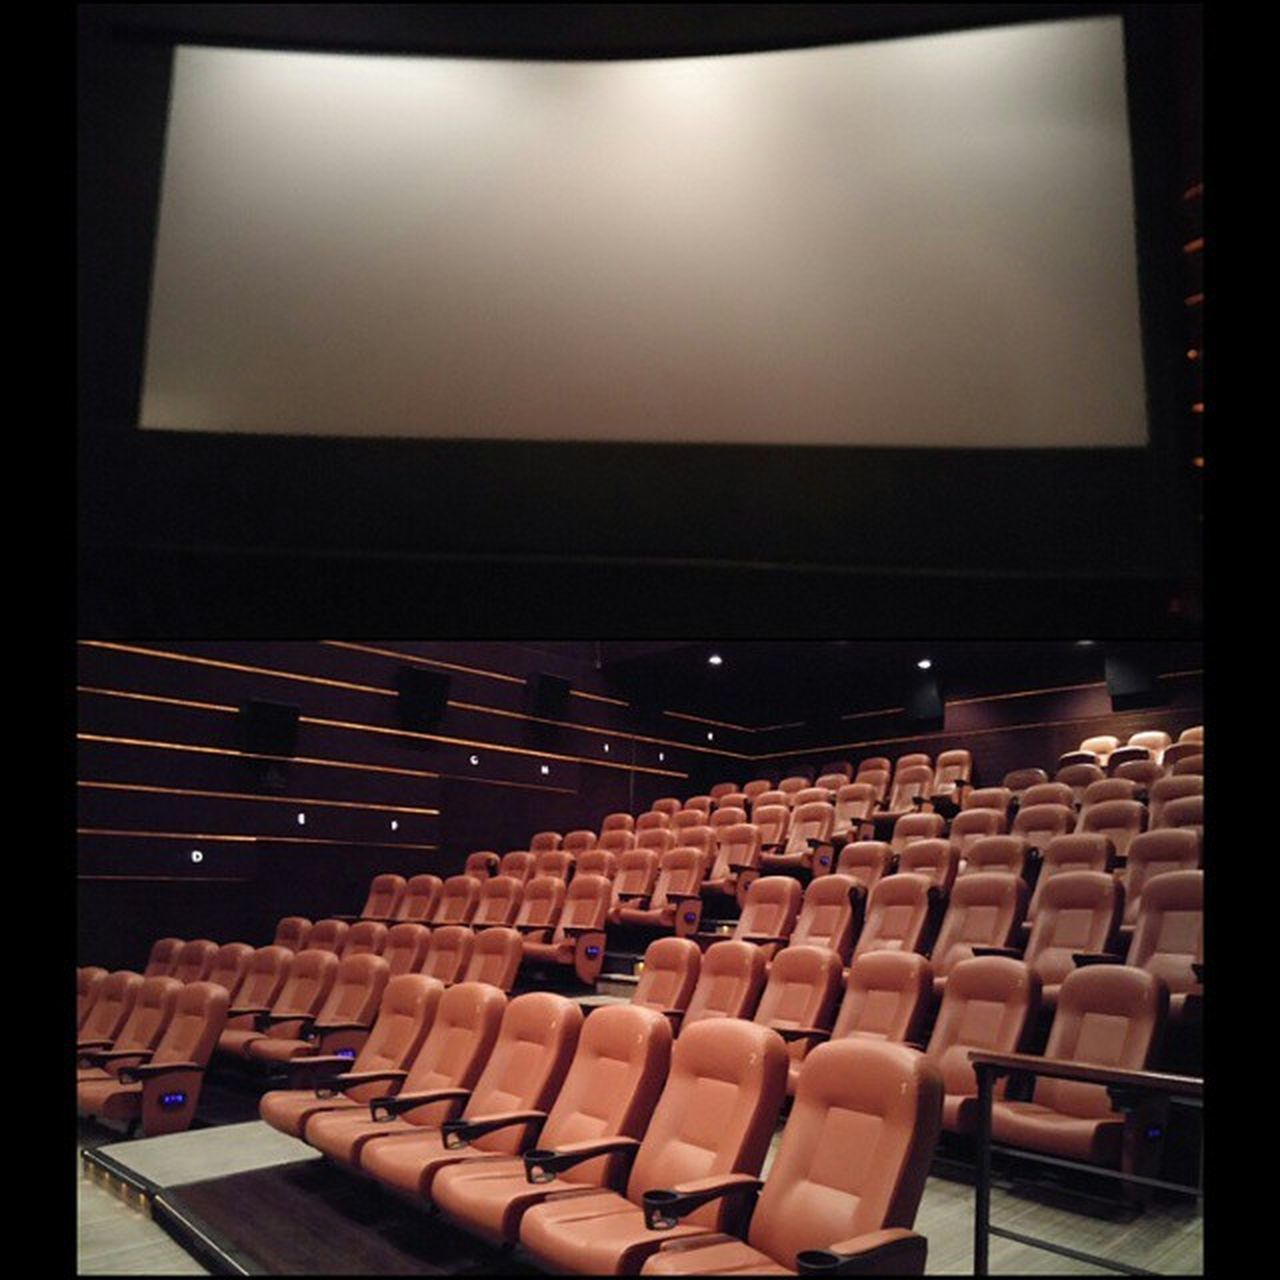 arts culture and entertainment, chair, in a row, indoors, auditorium, audience, seat, large group of objects, projection equipment, film industry, day